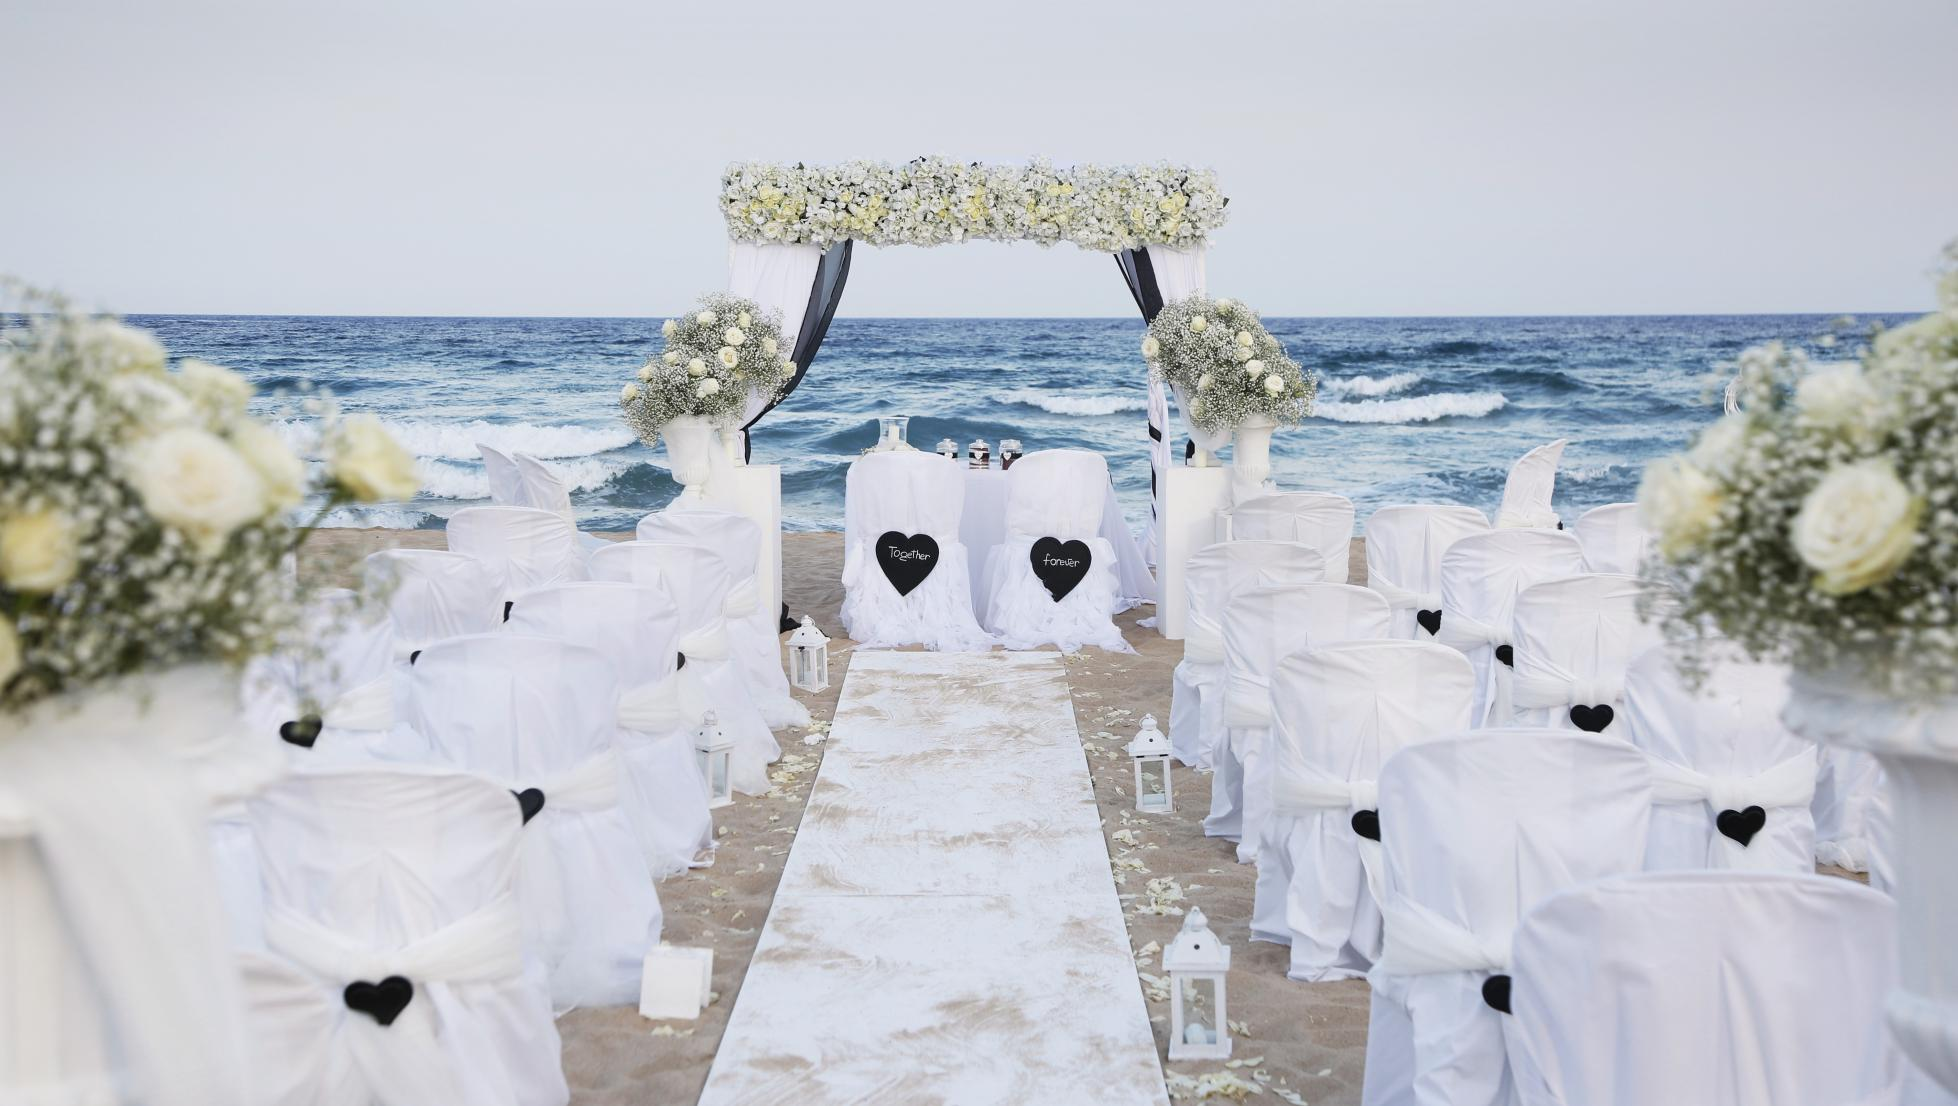 Wedding in Sardegna - Domus de Maria